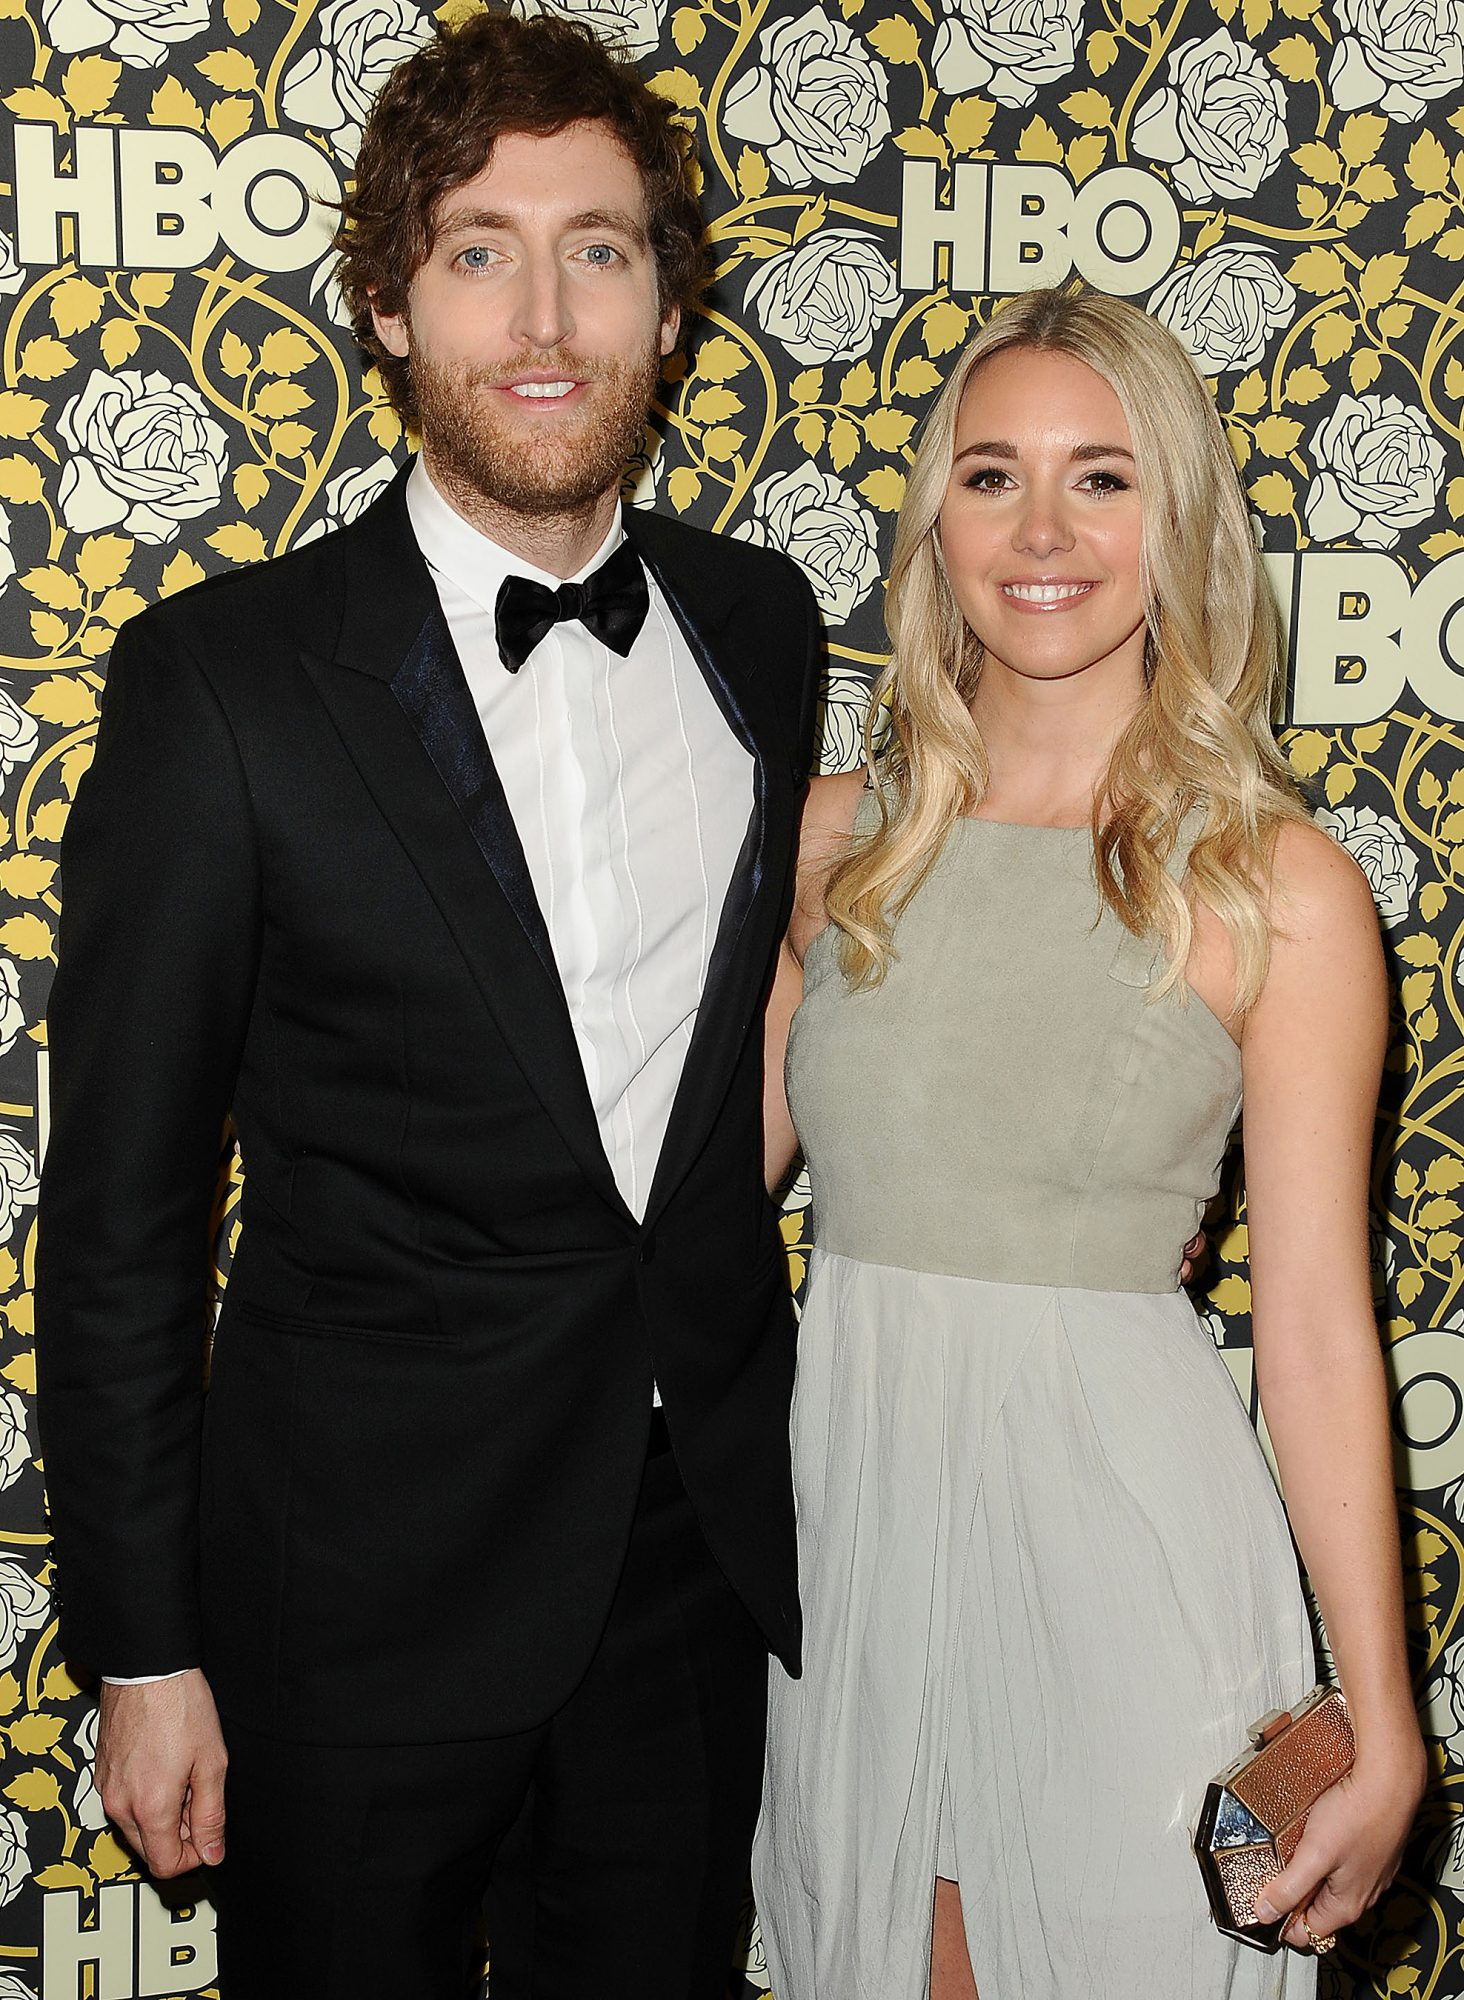 """The Silicon Valley actor and wife Mollie Gates have split after more than 4 years of marriage.                             Gates filed for divorce on the grounds of irreconcilable differences, according to court documents filed on May 28, which were obtained by PEOPLE. Their date of separation is listed as May 22.                             """"They still care deeply for each other and will move forward as friends,"""" a source close to the couple told PEOPLE.                             News of their split comes nearly a year after Middleditch, 38, revealed to Playboy that the pair had decided to have an open marriage."""